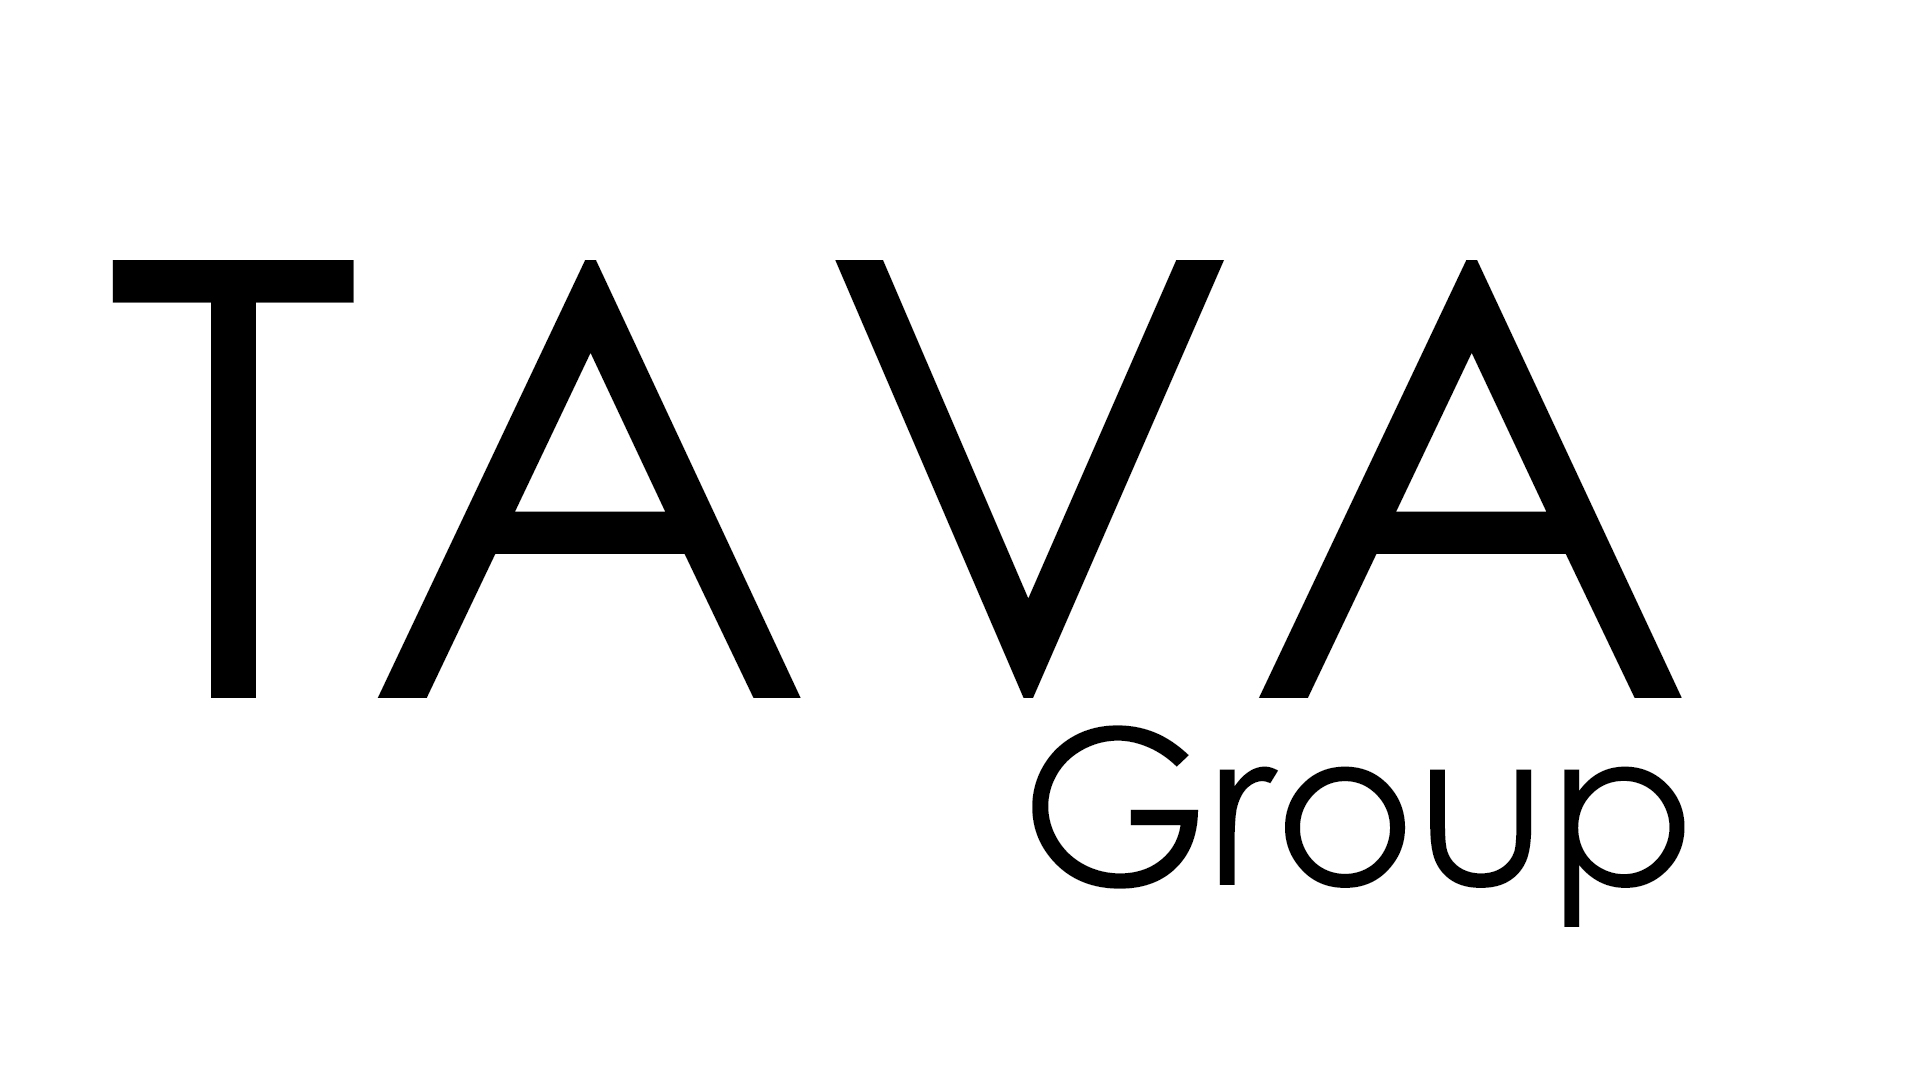 Logo Design by Levi Mae Añana - Entry No. 144 in the Logo Design Contest Creative Logo Design for Tava Group.